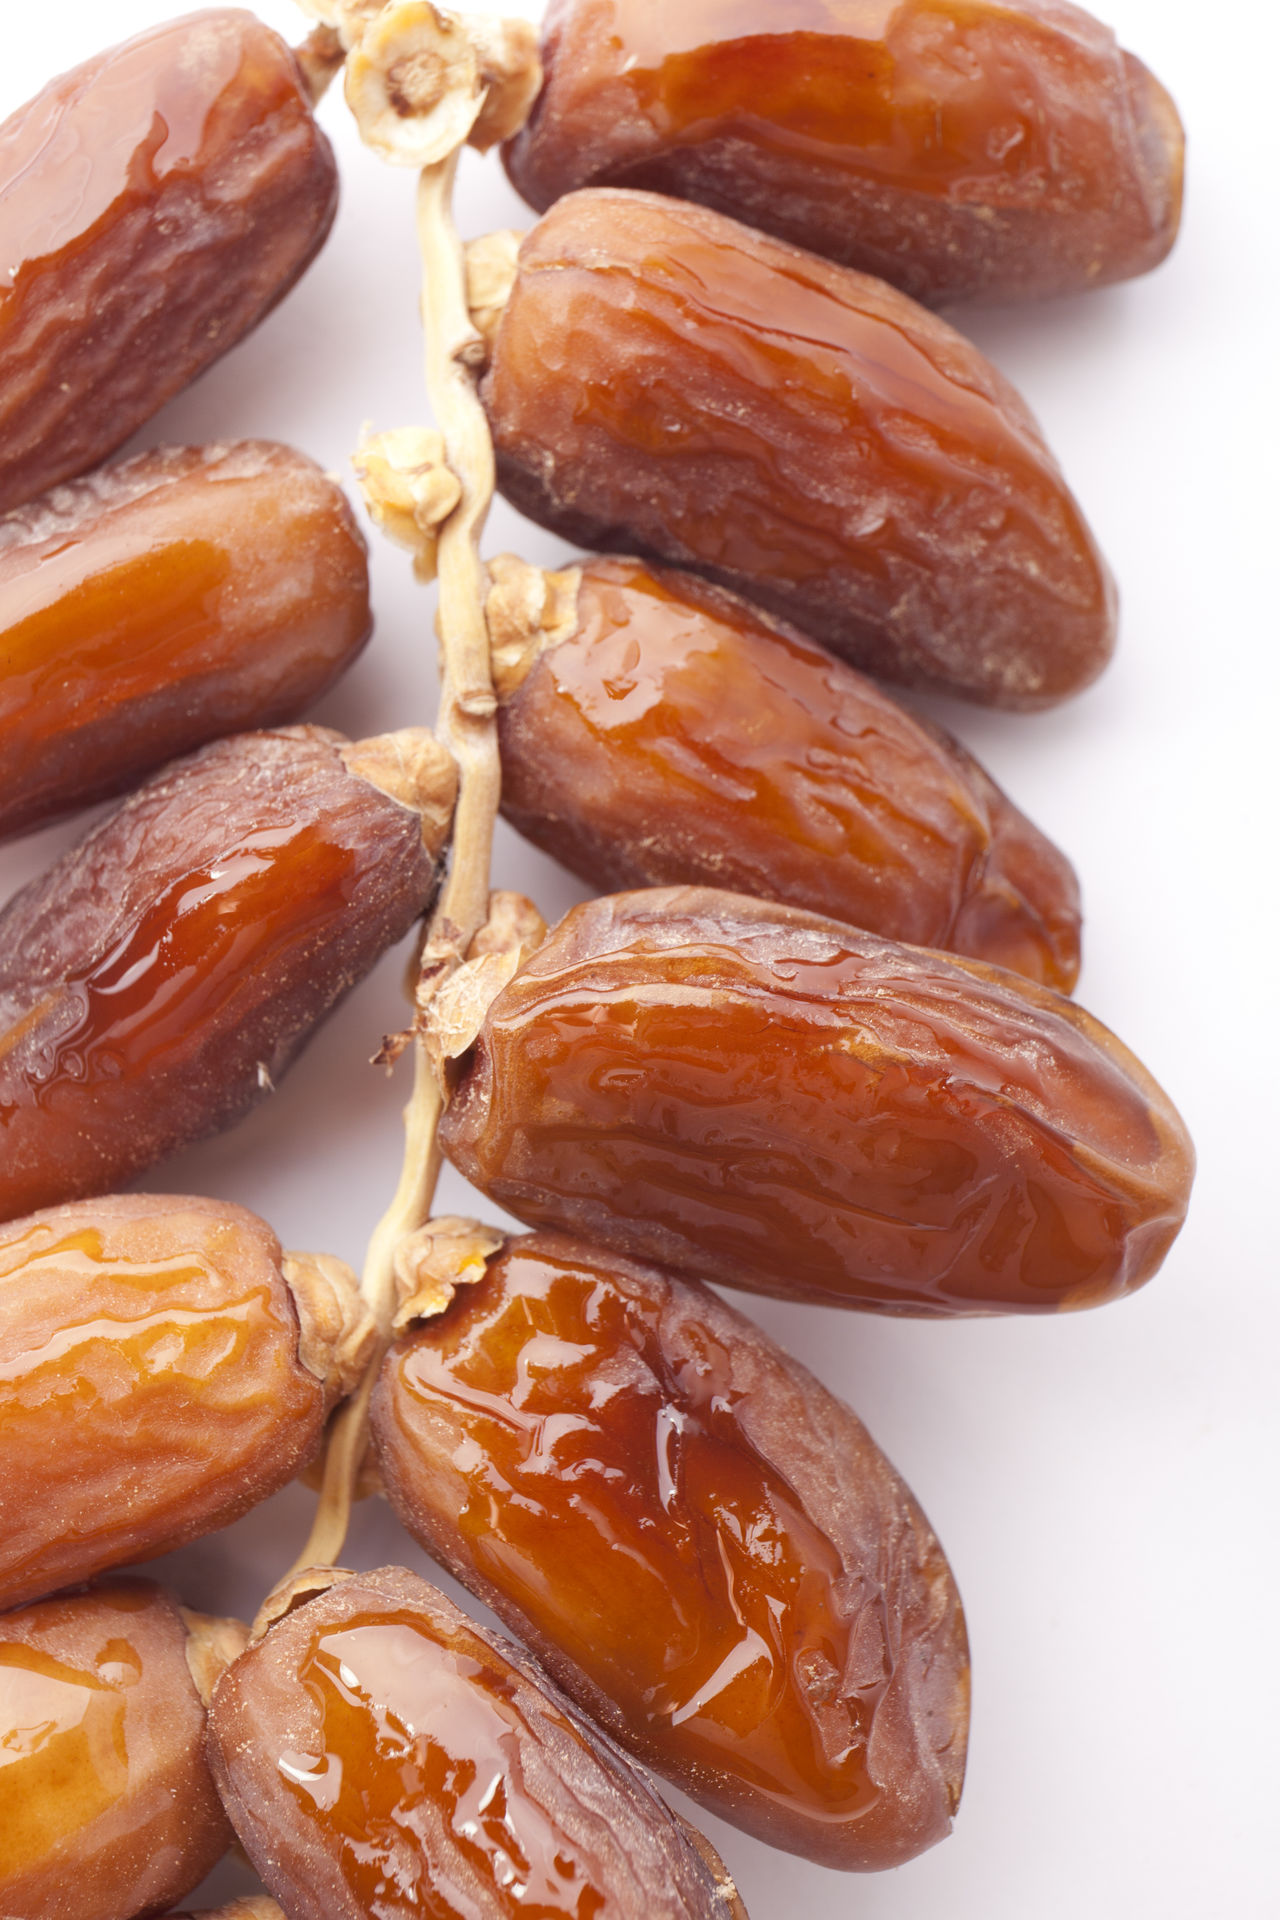 Date Fruit Close-up Color Image Date Fruit Day Dried Fruit Focus On Foreground Food Food And Drink Freshness Fruit Healthy Eating Indoors  Ingredient No People Photography Ready-to-eat Still Life Studio Shot Vertical White Background